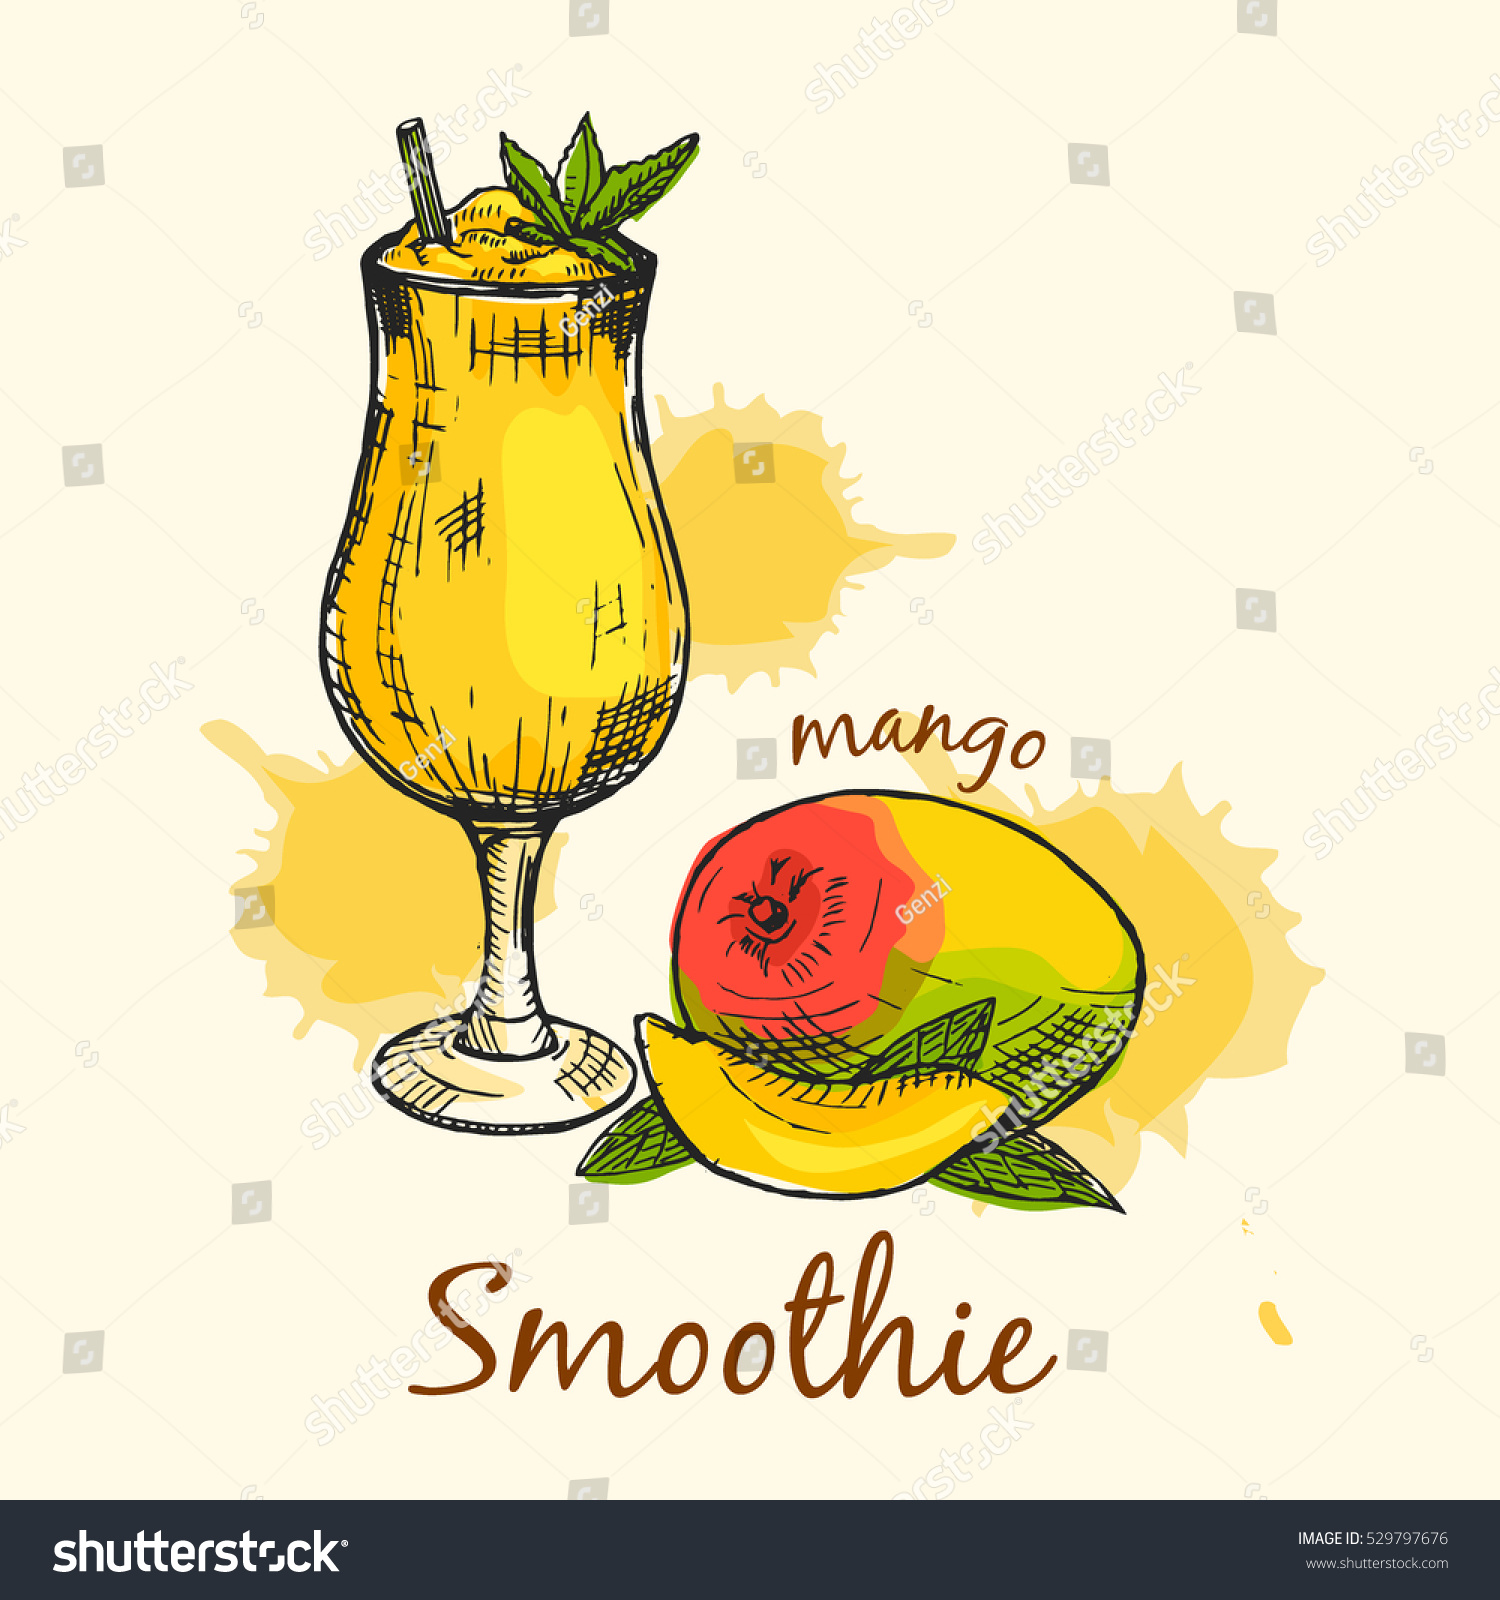 For restaurant pictures graphics illustrations clipart photos - Colorful Composition Of Mango Smoothie Creative Graphic Design Vector Illustration Used For Banner